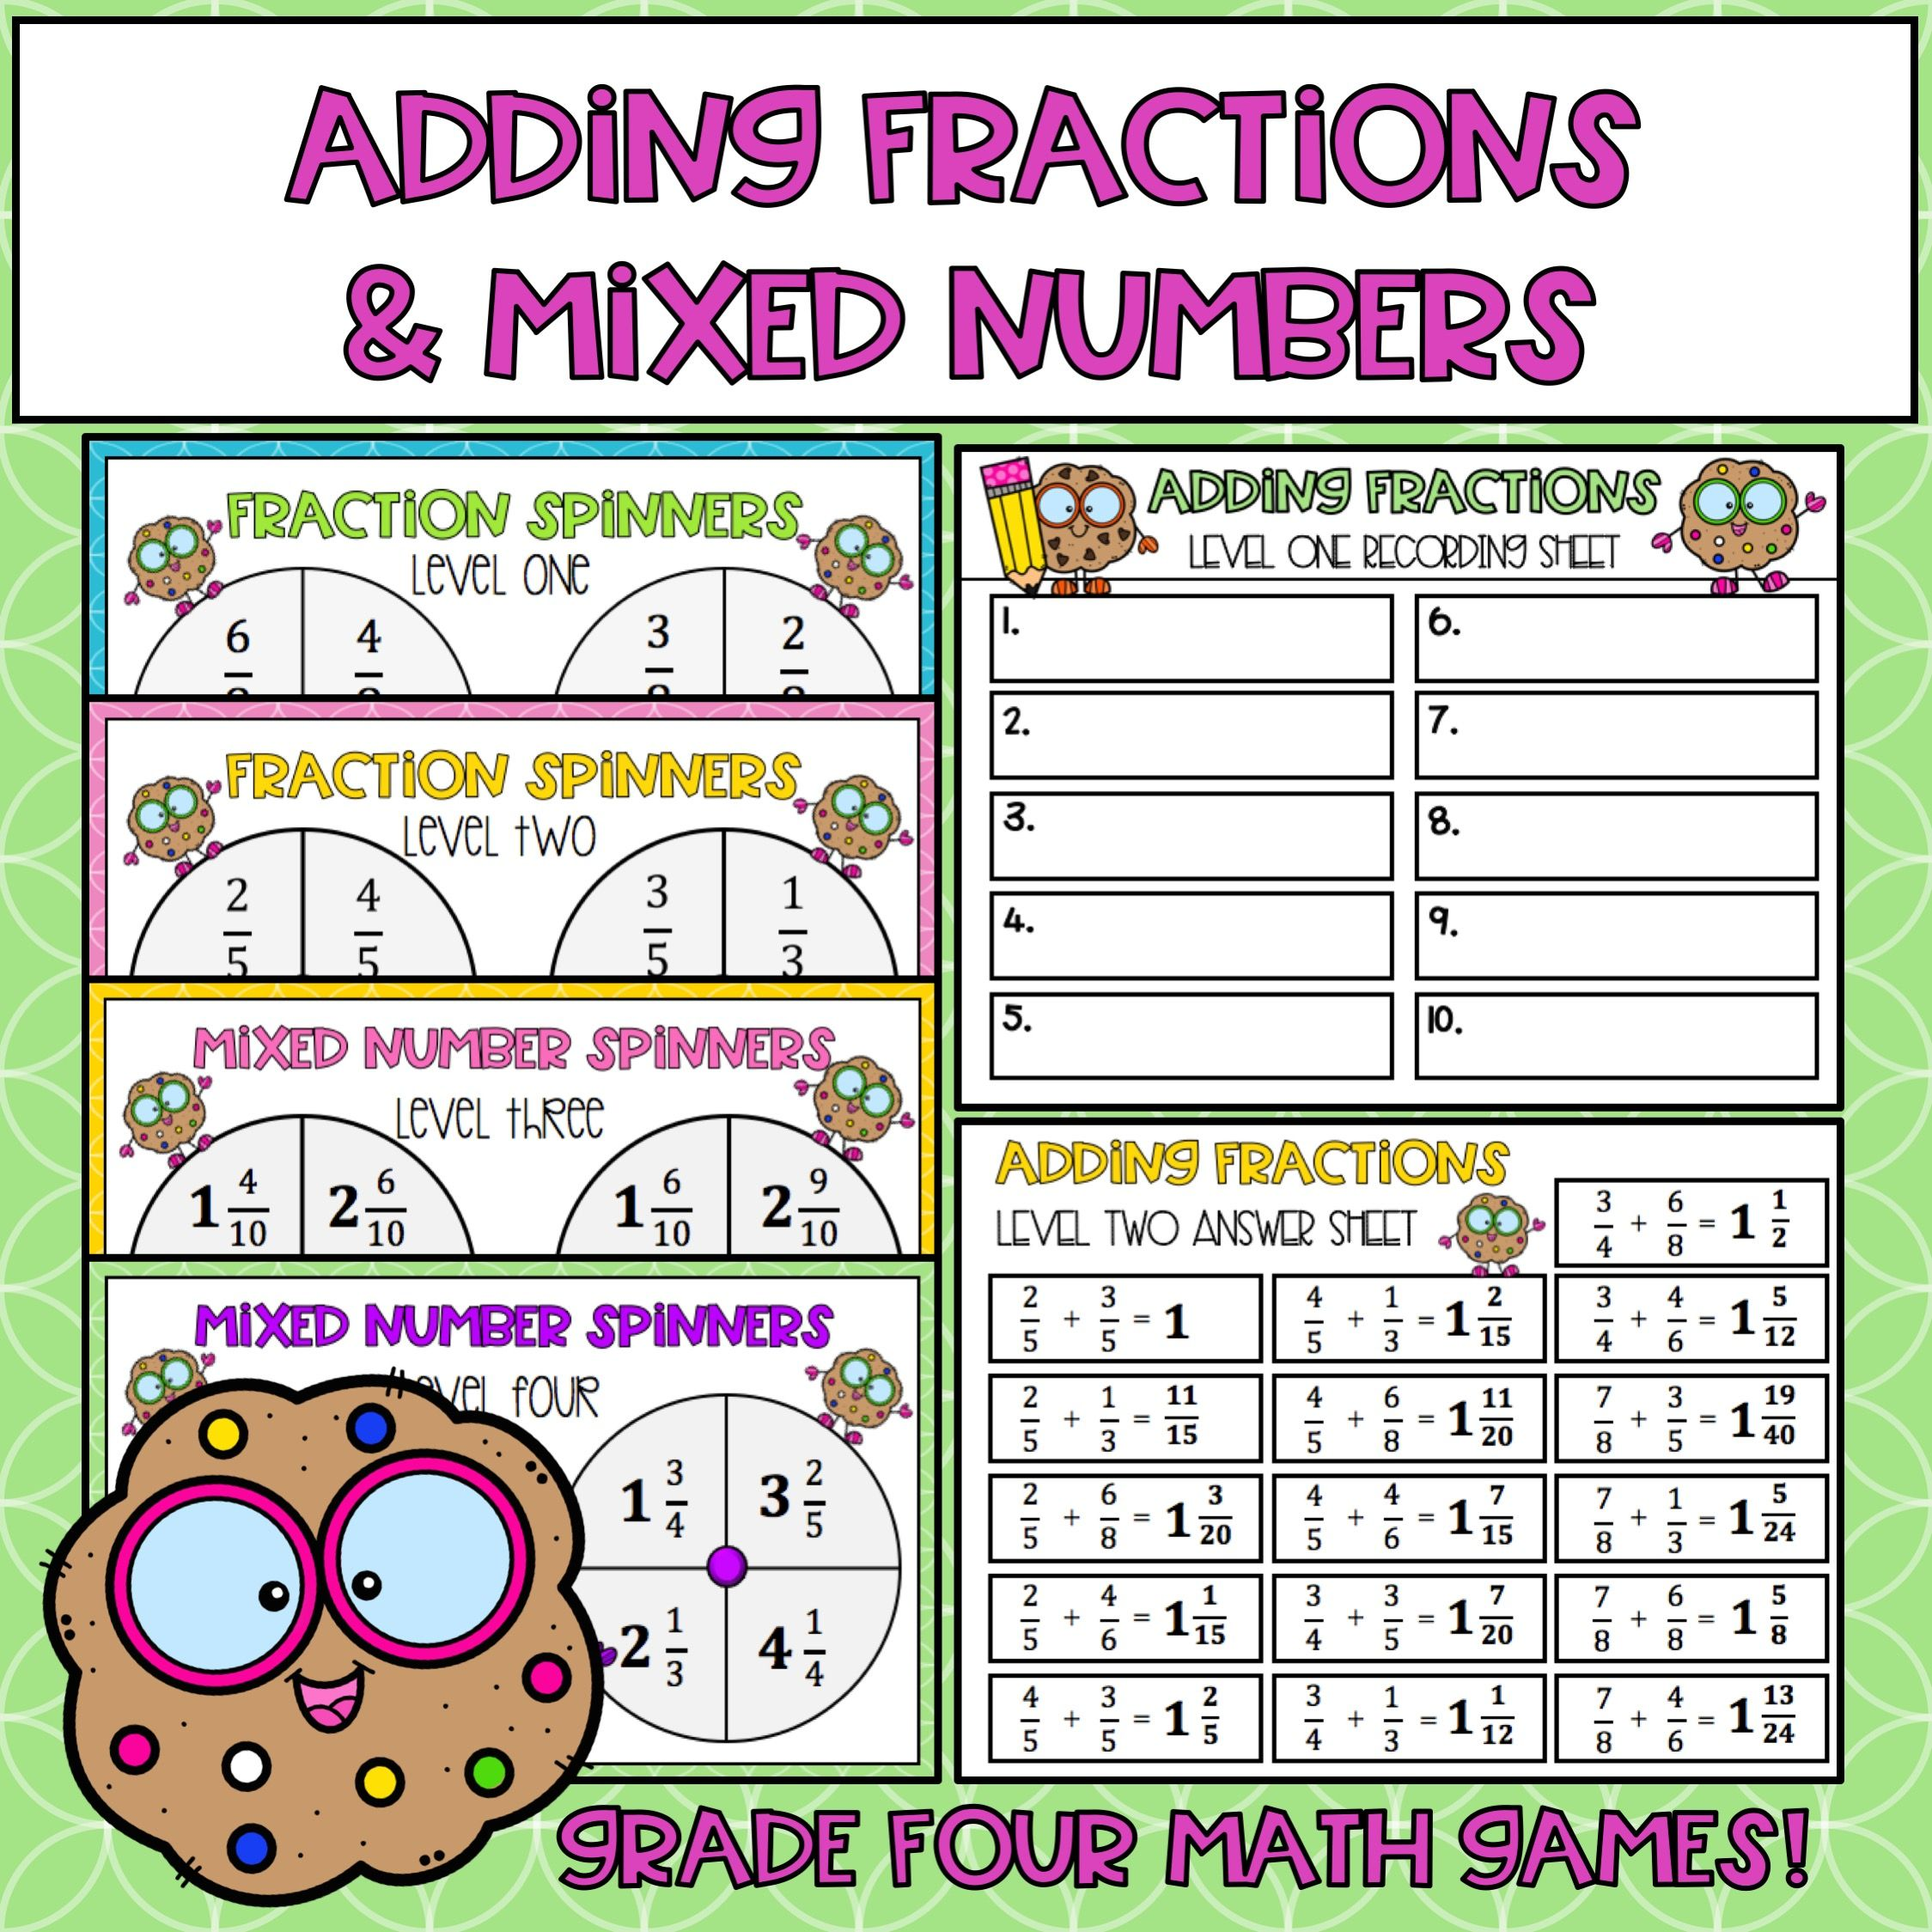 Adding Fractions And Mixed Numbers With Images